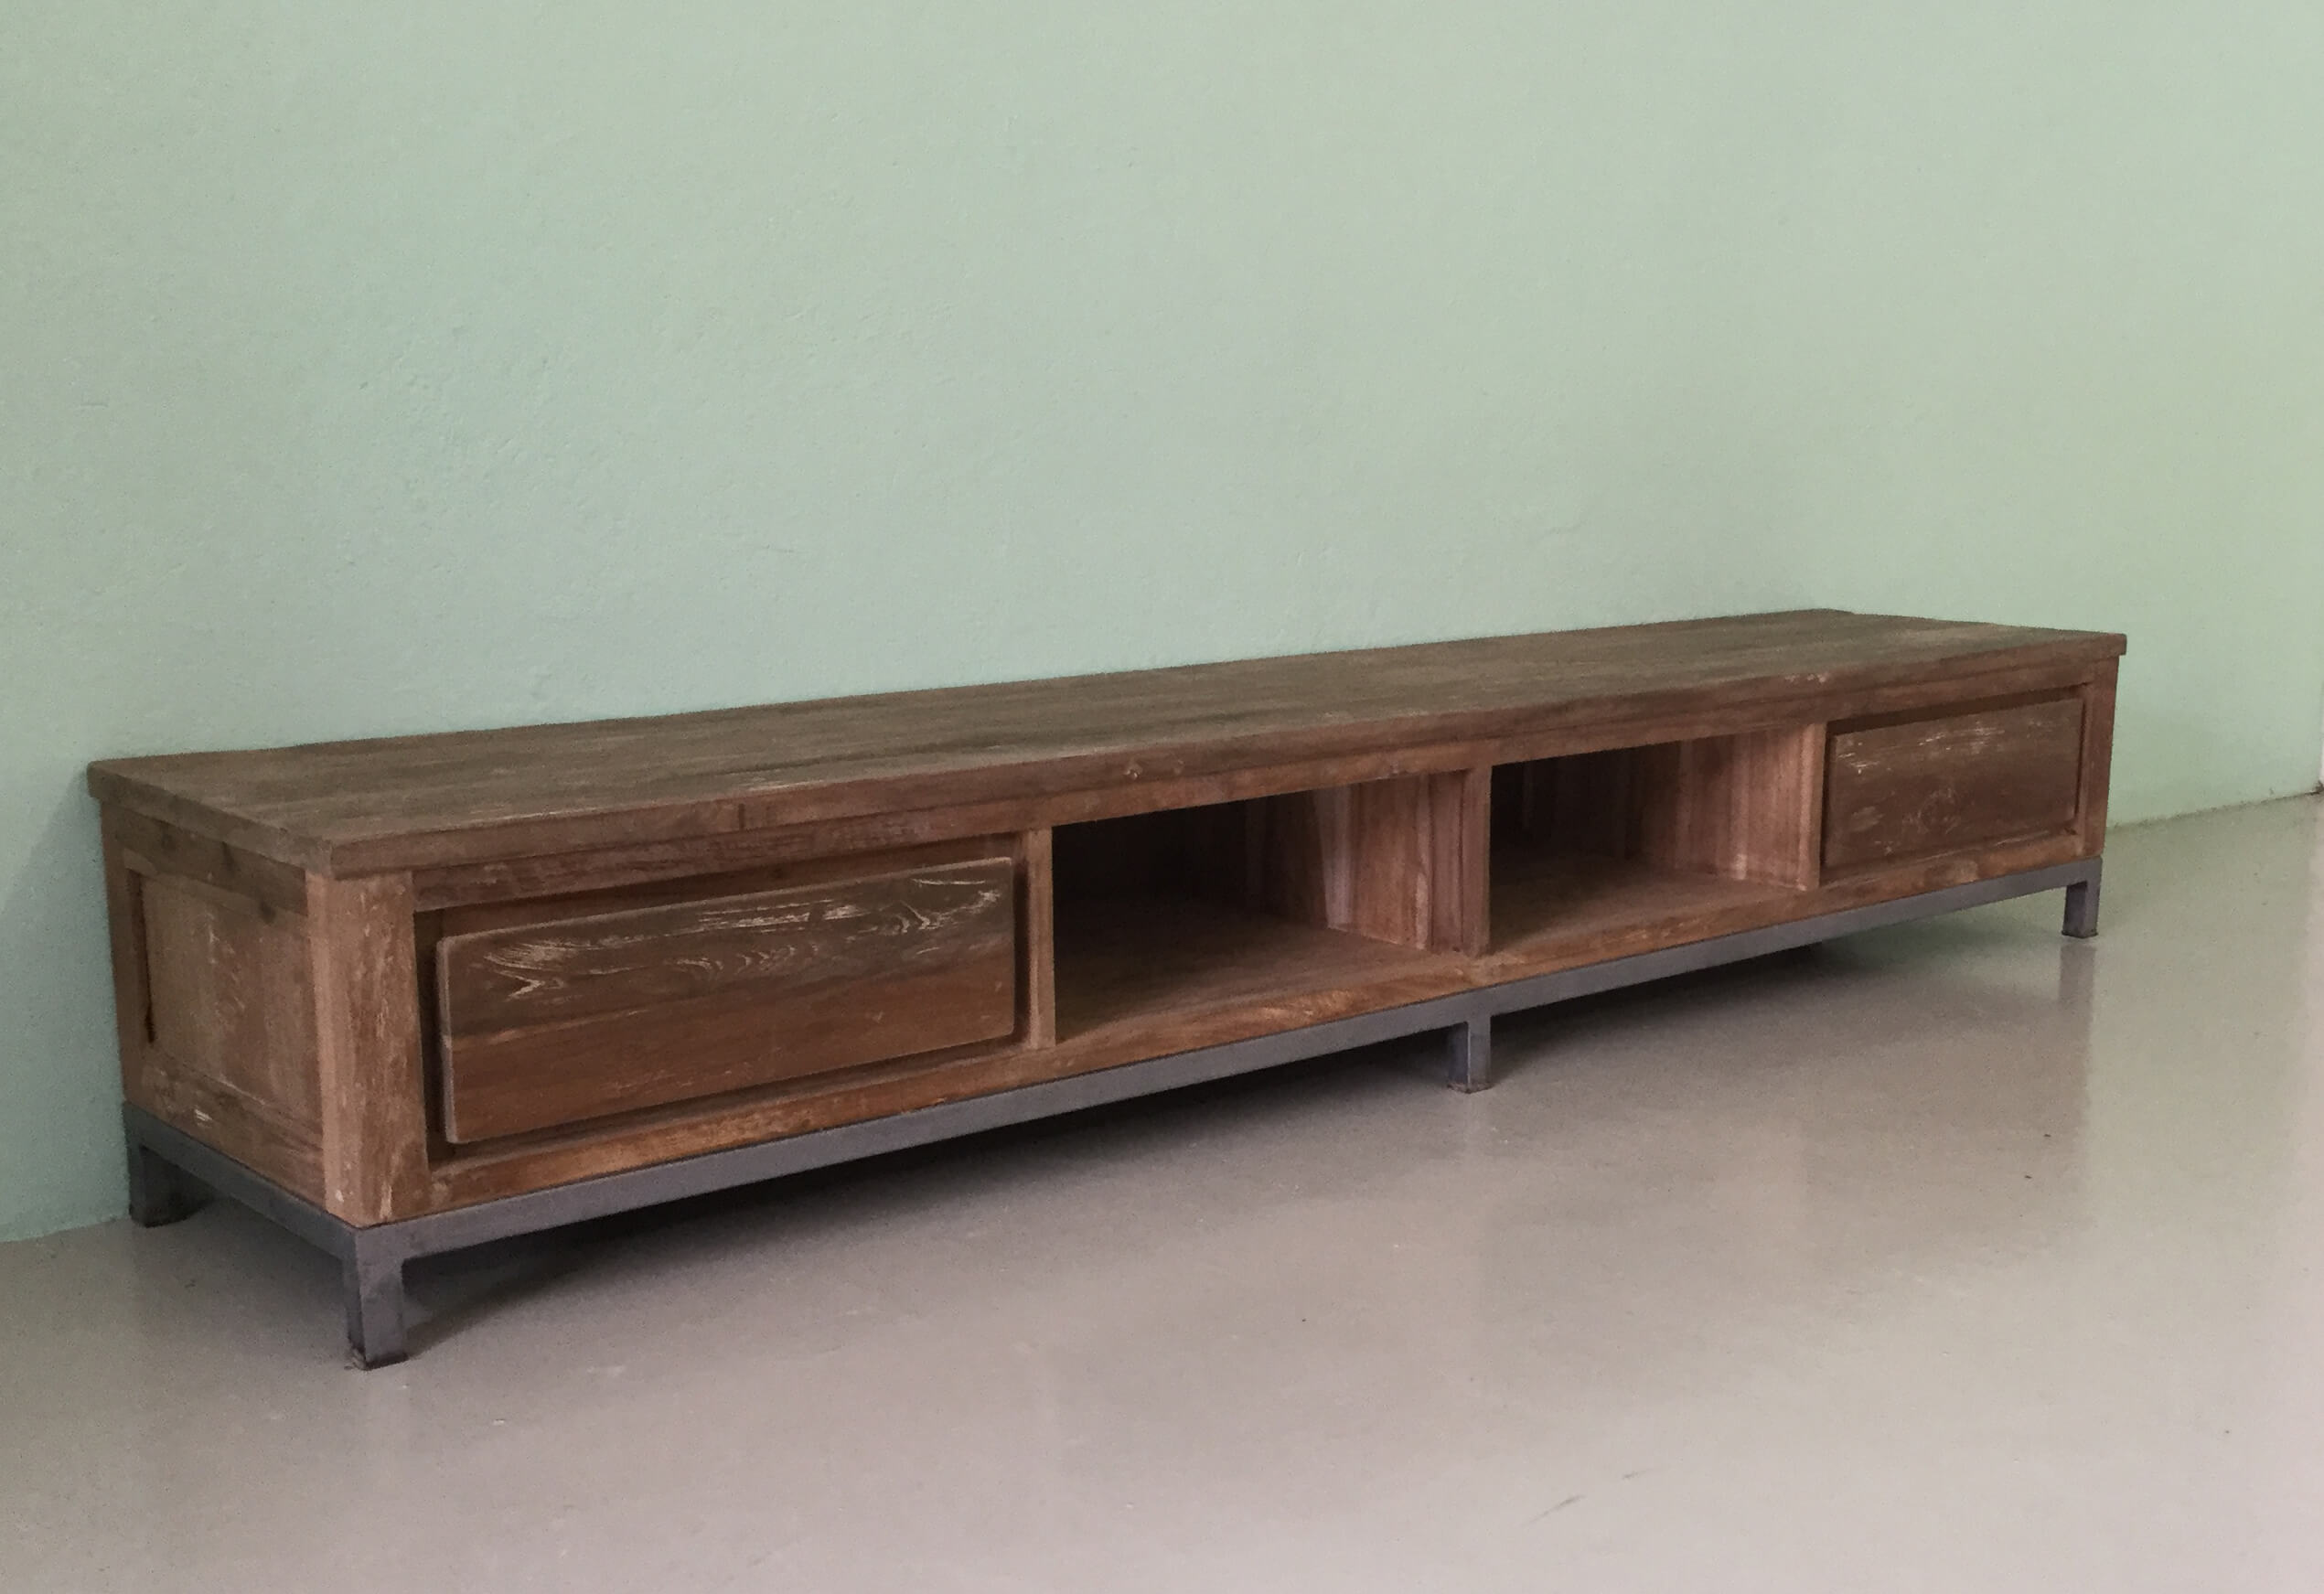 Tv Meubel Dressoir Kast.Industrieel Teak Tv Meubel Indoteak